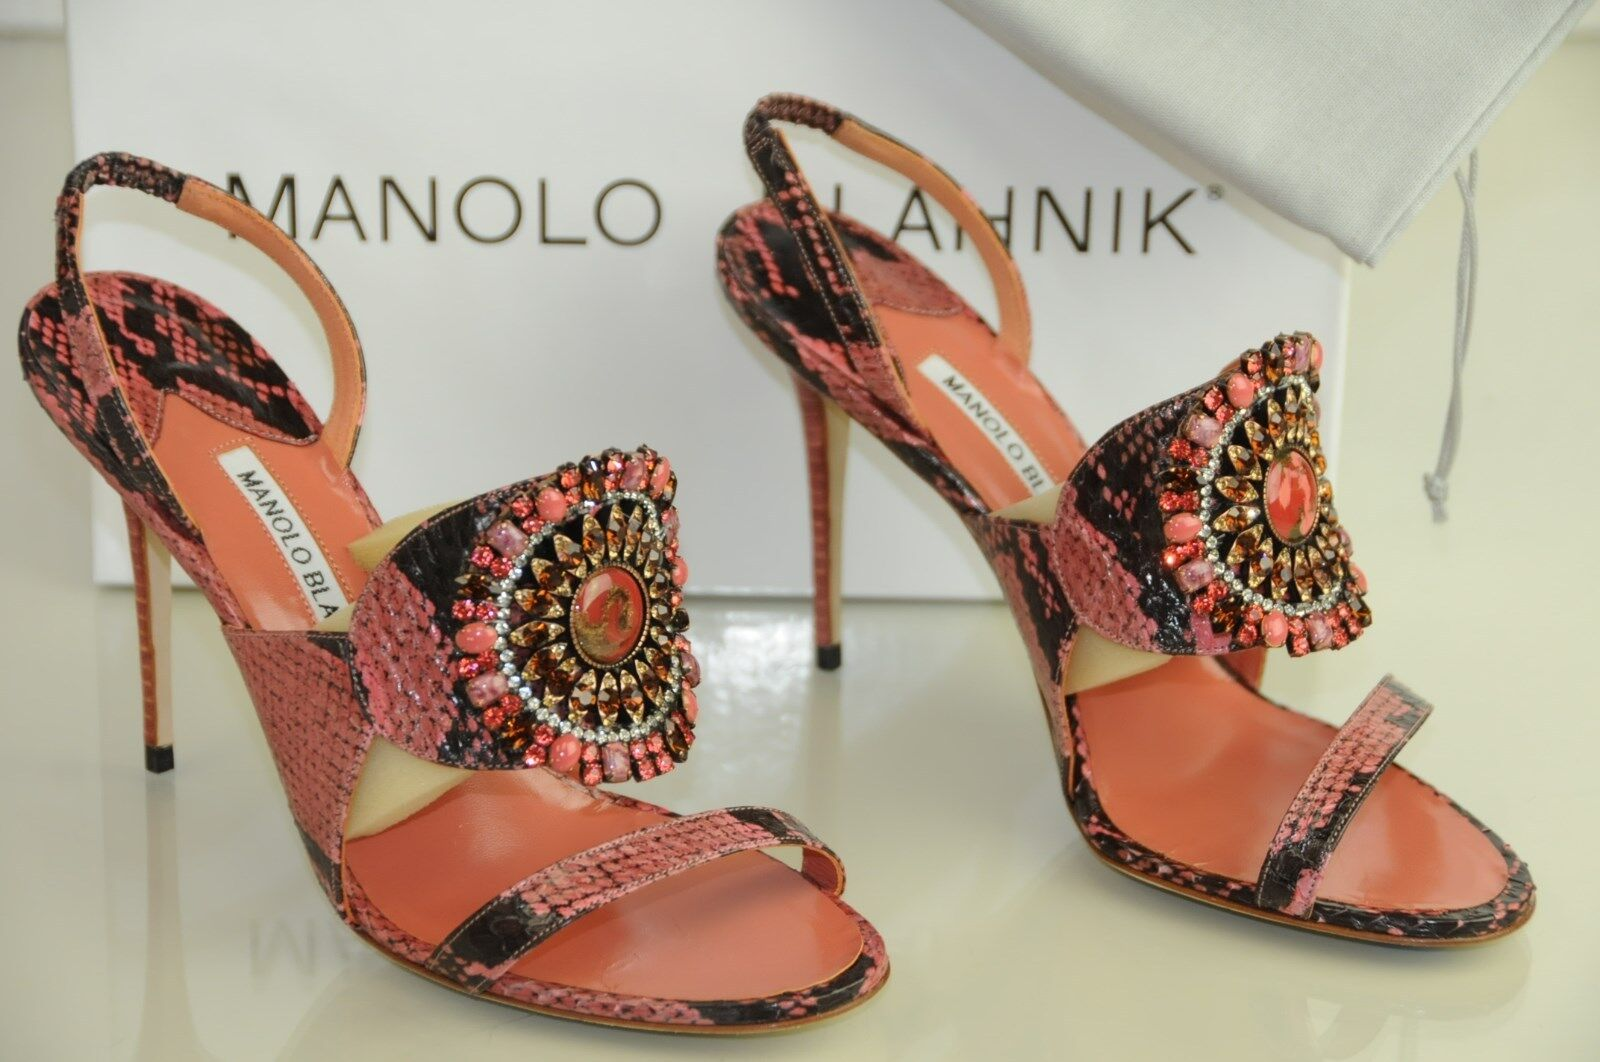 1445 New MANOLO BLAHNIK RONDANYJeweled CORAL PINK Python SANDALS SHOES Heels 40